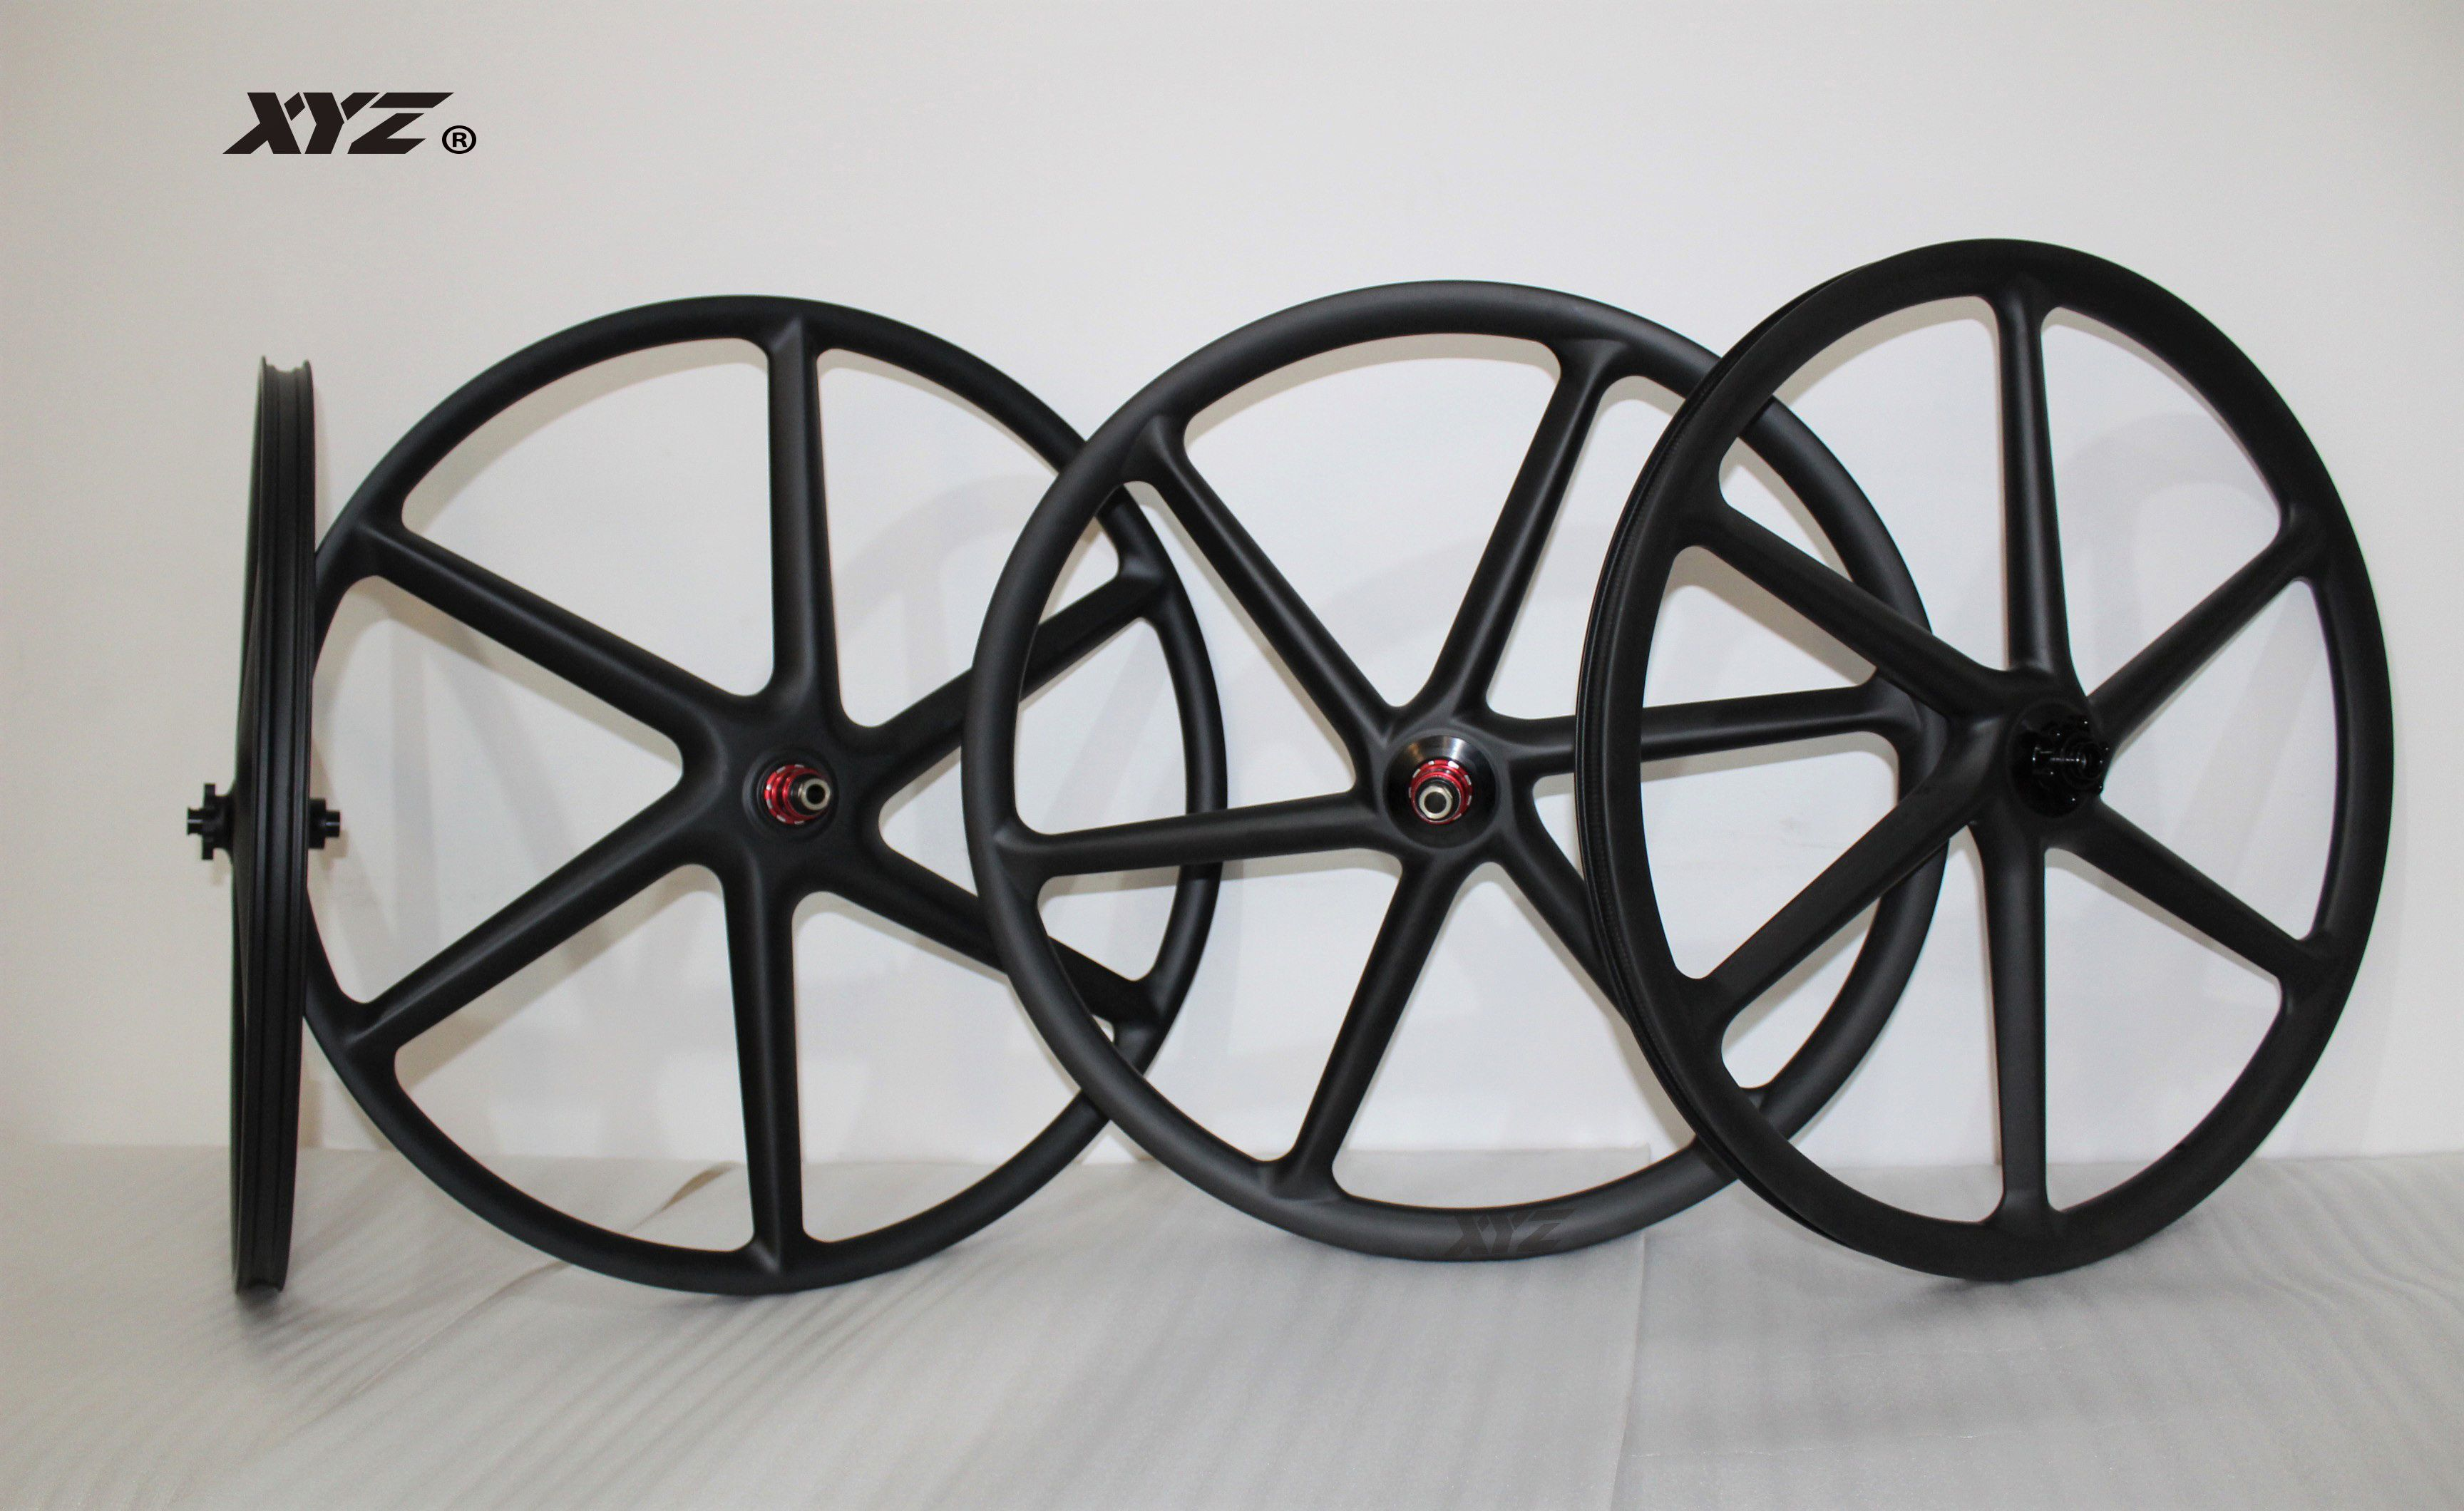 2018 Popular Mountain Bike 6 Spoke Carbon Wheel 26er 27 5 29